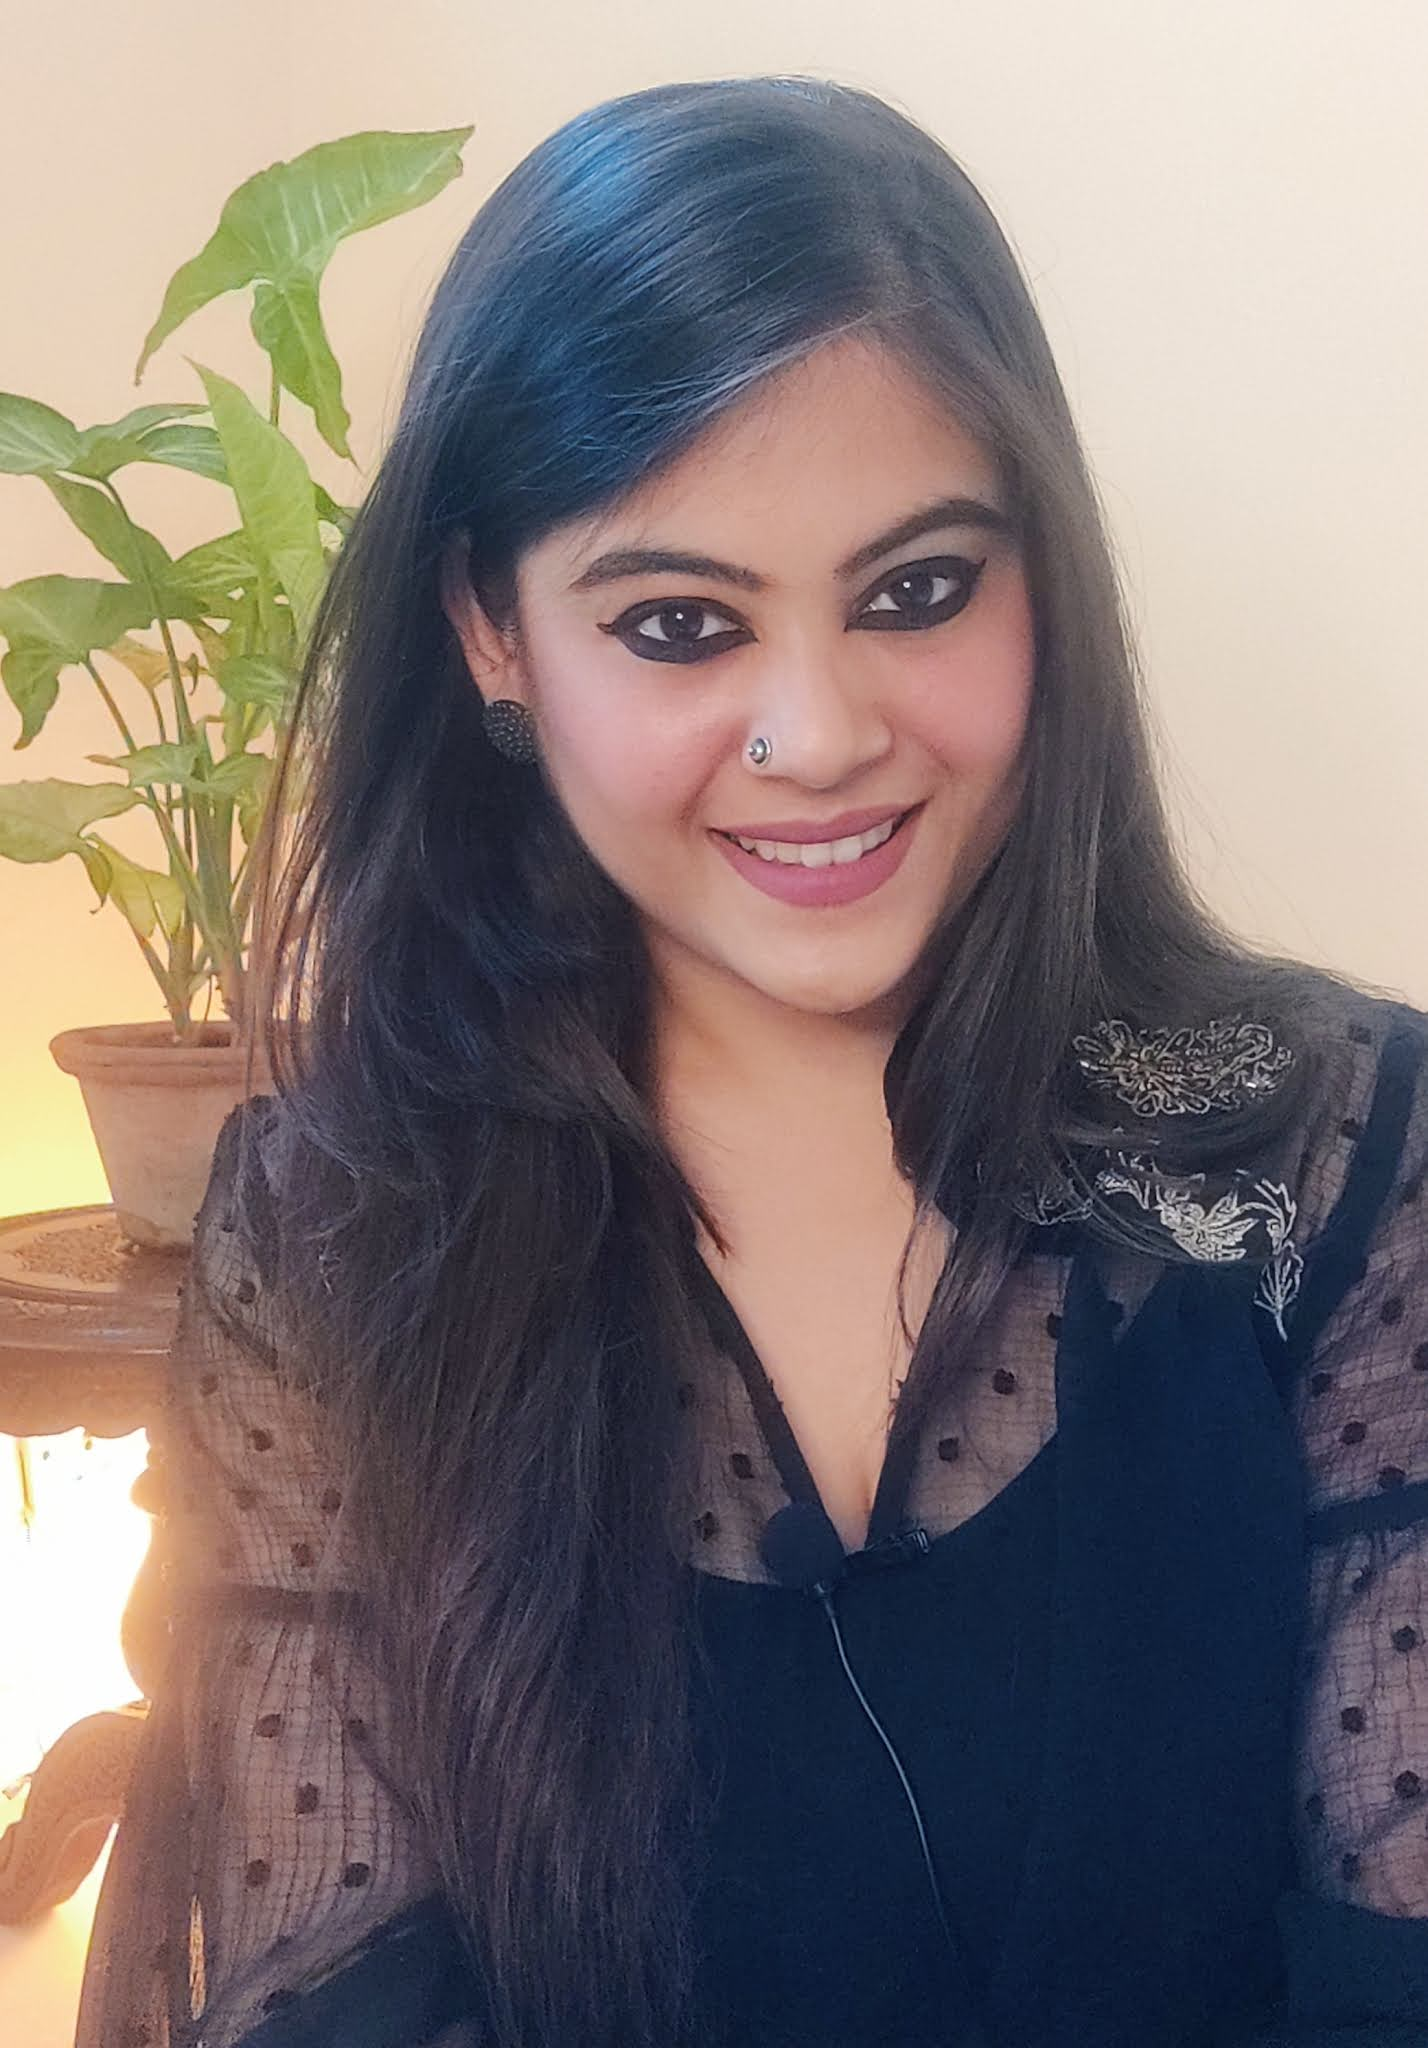 Sakshi Singhal - Tarot Reading Is More About Guiding People About Their Energies and Their Thoughts (Tarot Card Reader From India)